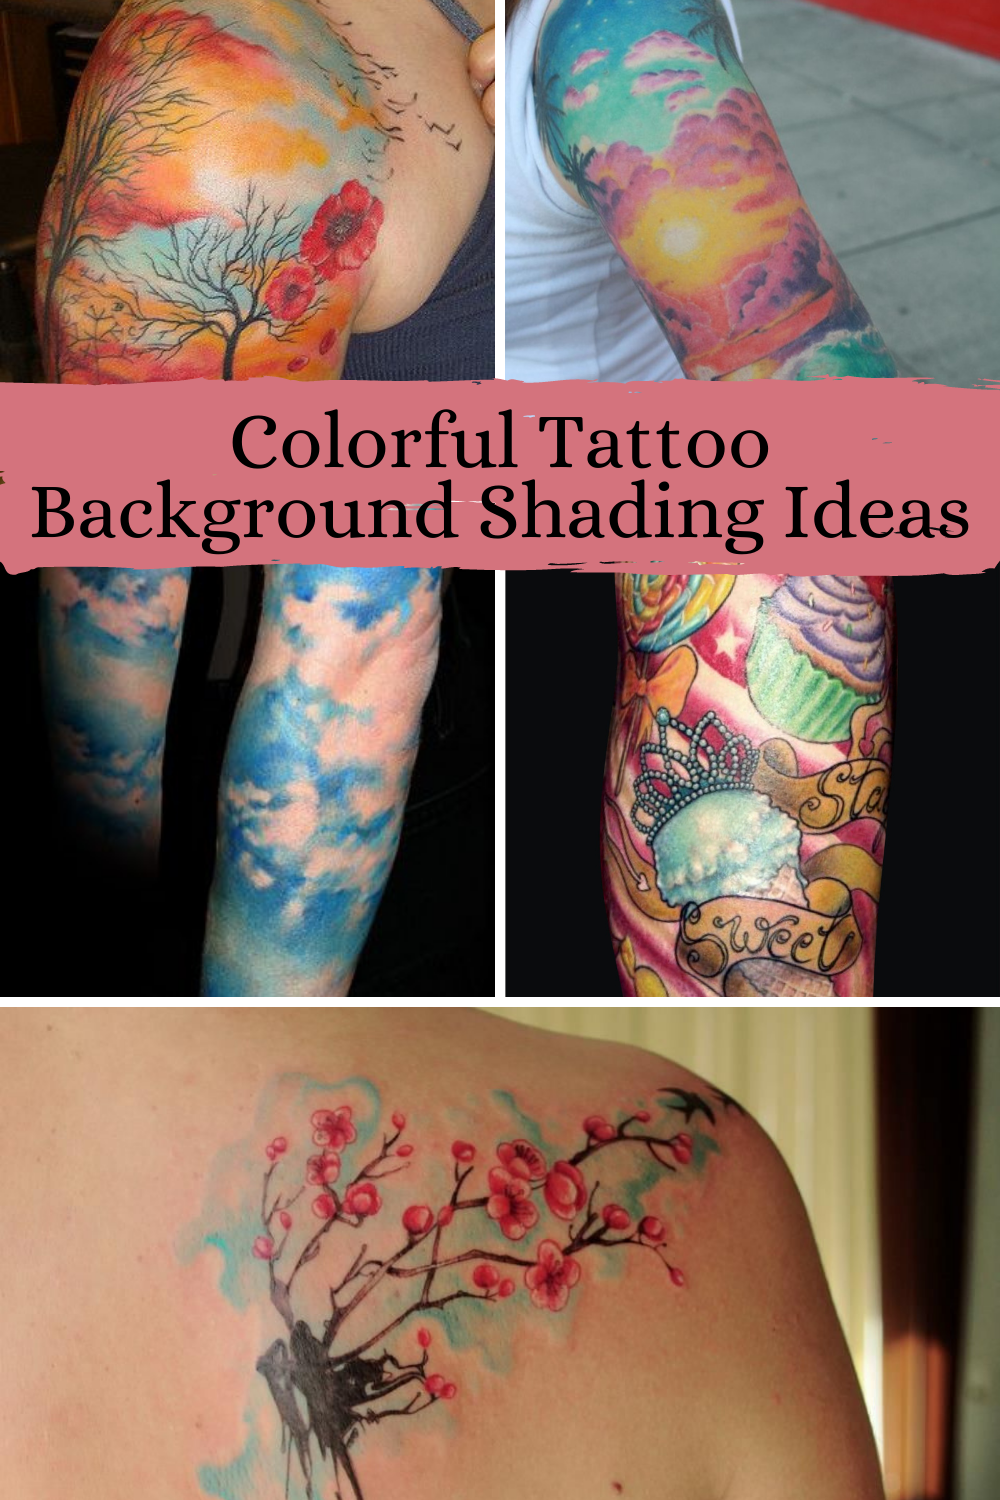 Shading Ideas for tattoos with color